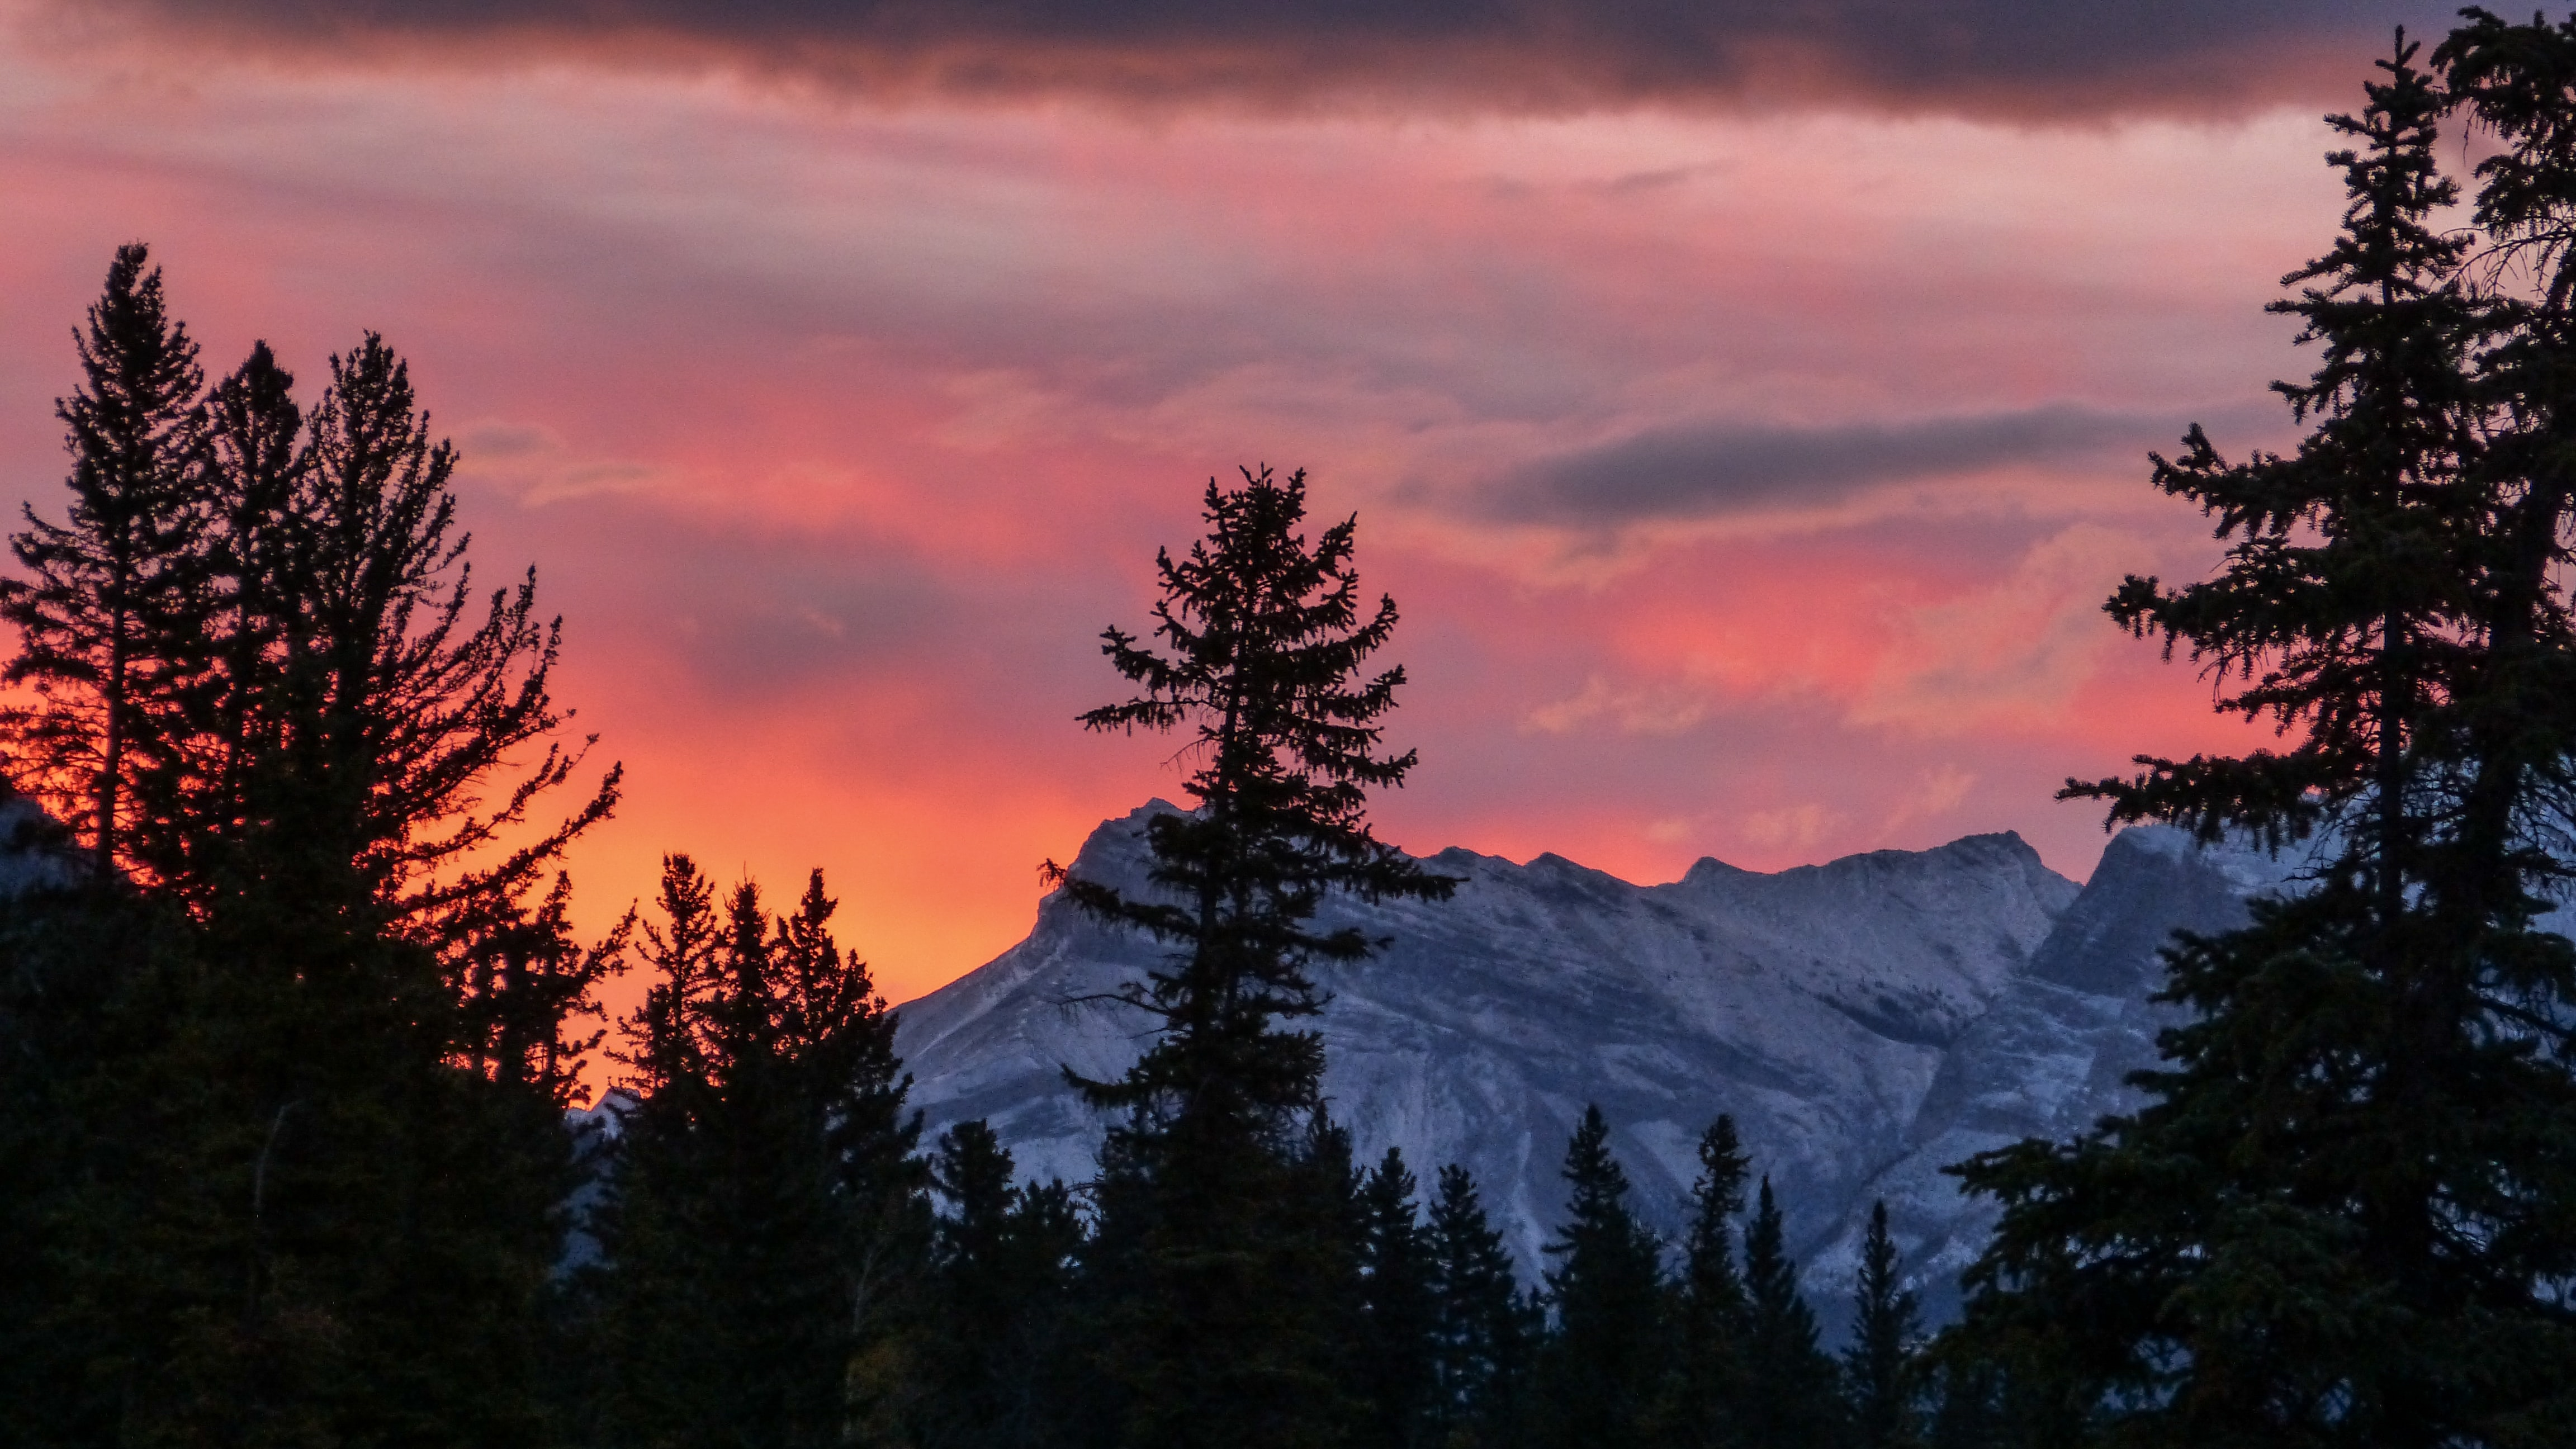 silhouette of trees during golden hour with view of snow-capped mountains